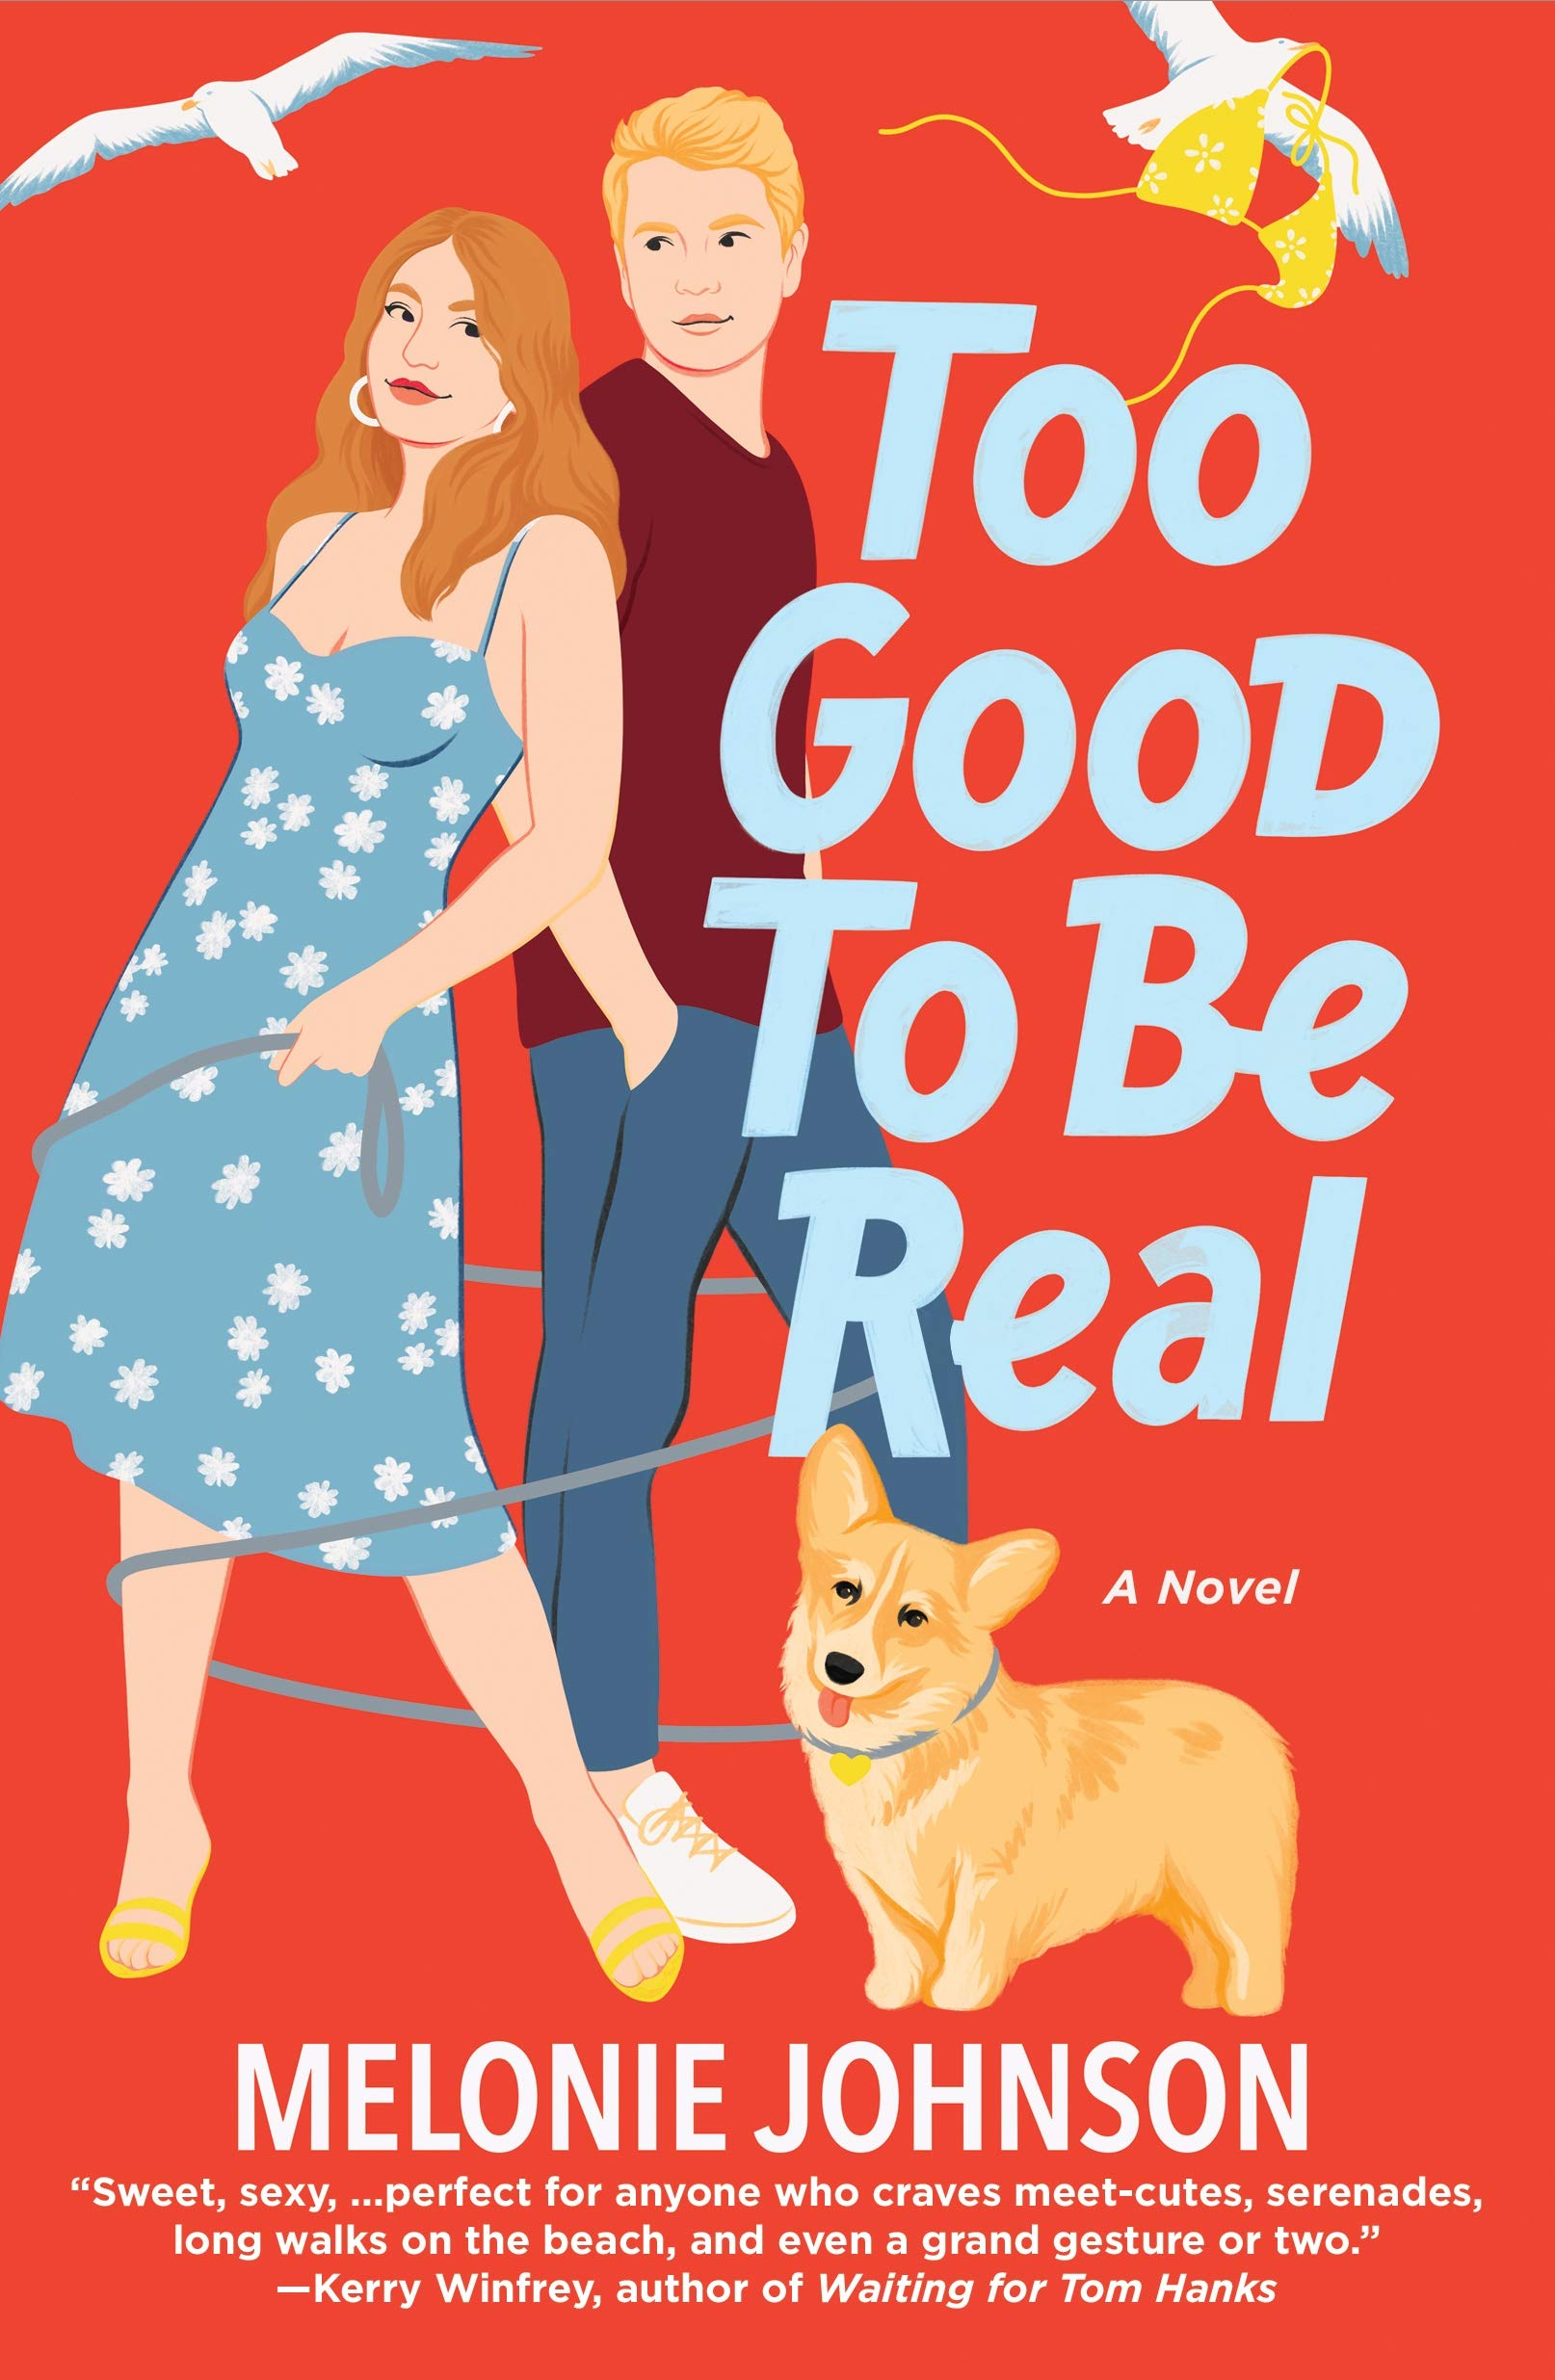 Too Good to Be Real by Melonie Johnson